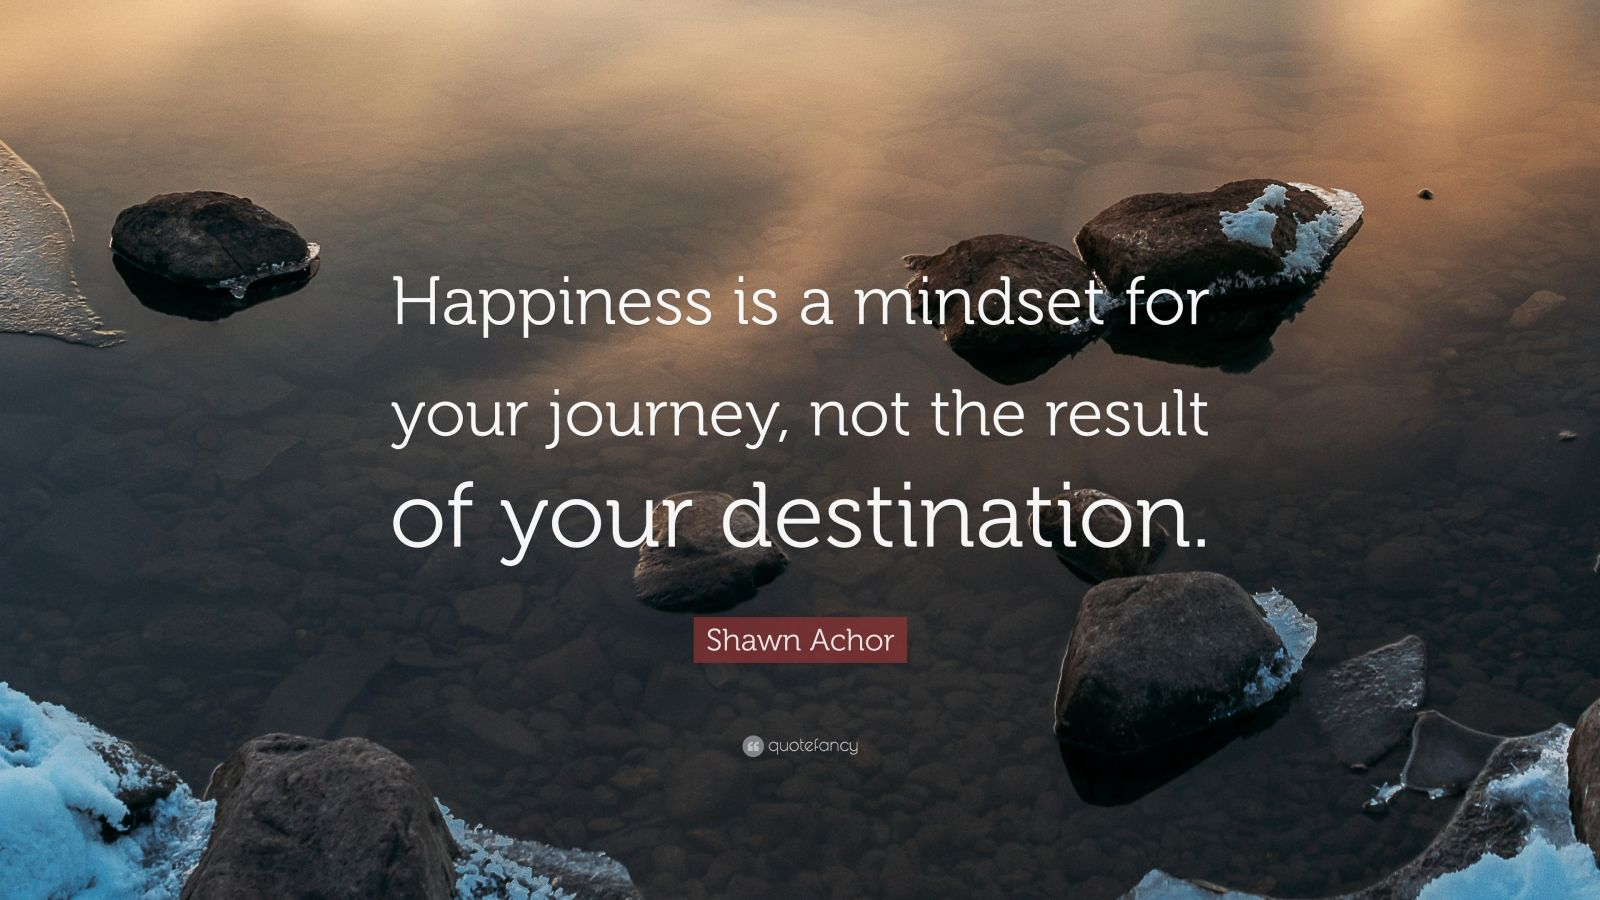 """Shawn Achor Quote: """"Happiness is a mindset for your journey, not the result of your destination."""""""